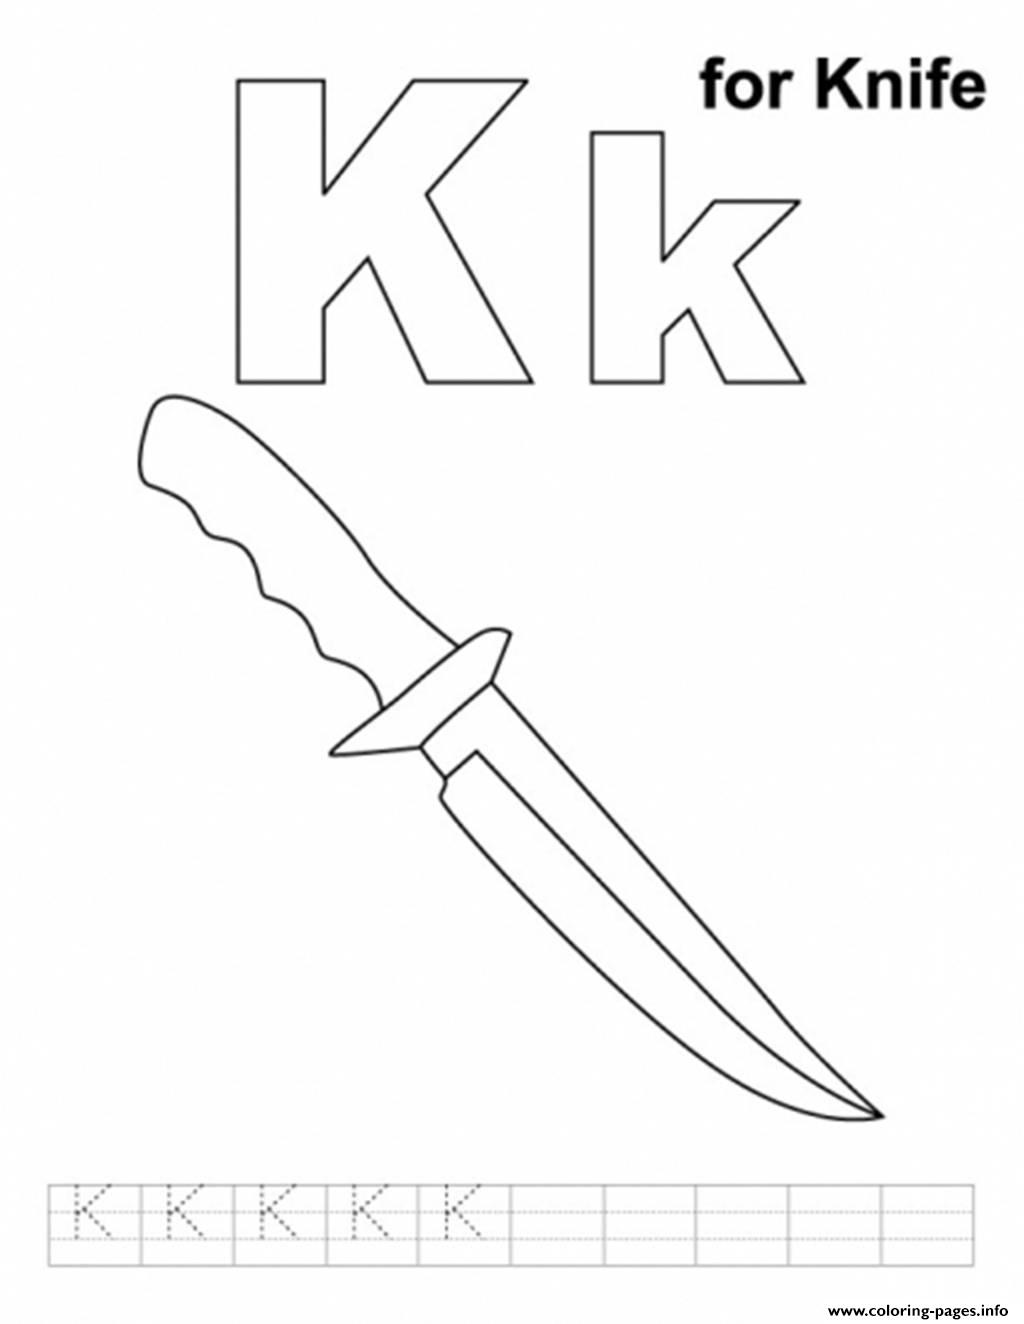 butterfly knife coloring pages - photo#24